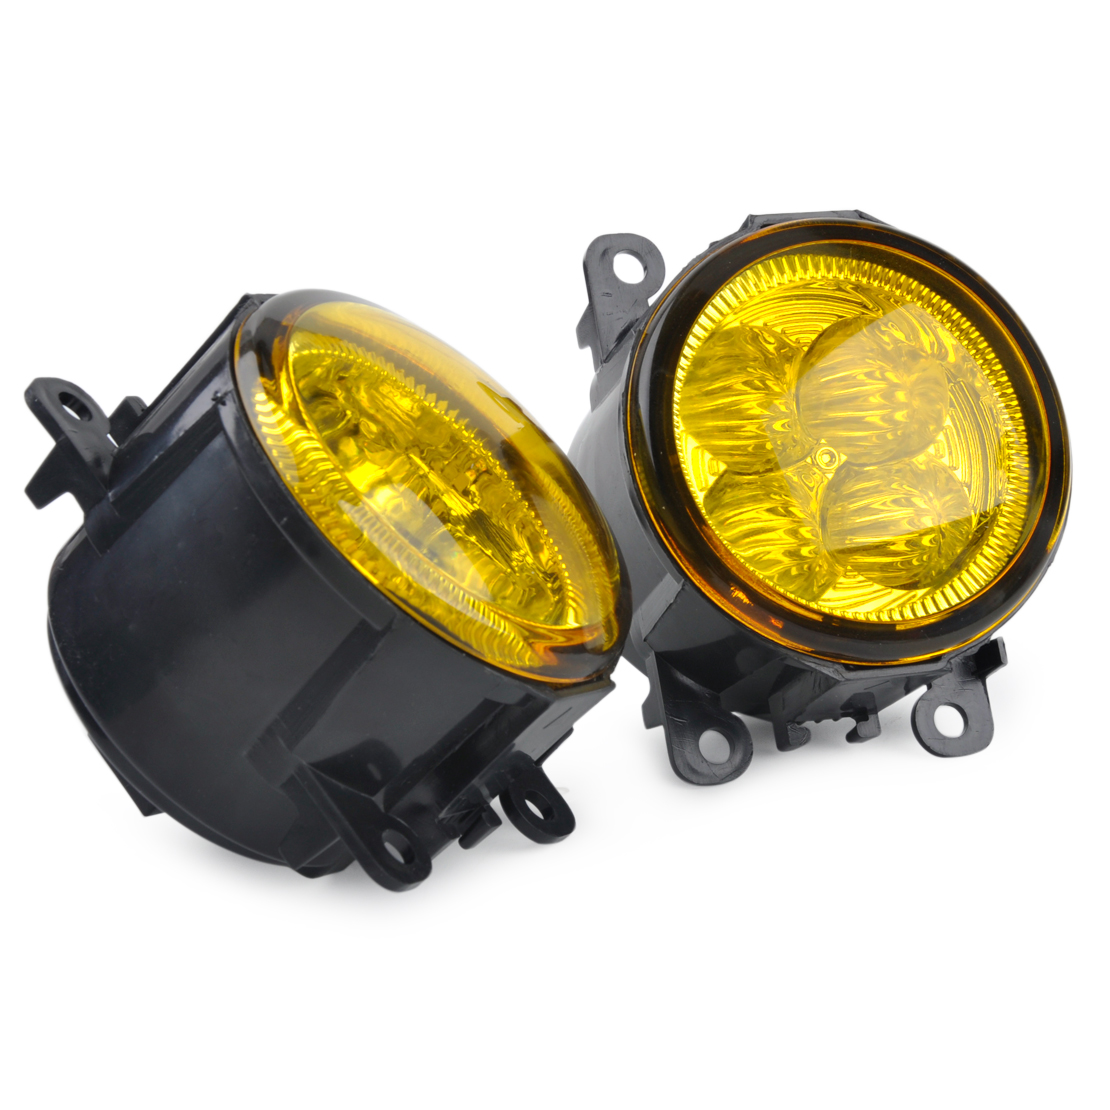 beler 2pcs Highlighted LED Fog Light Lamp with Yellow Lens Replacement 33900-T0A-A01 for Ford Focus Acura Honda Subaru Nissan beler fog light lamp h11 female adapter wiring harness sockets wire connector for ford focus fiesta acura nissan honda subaru